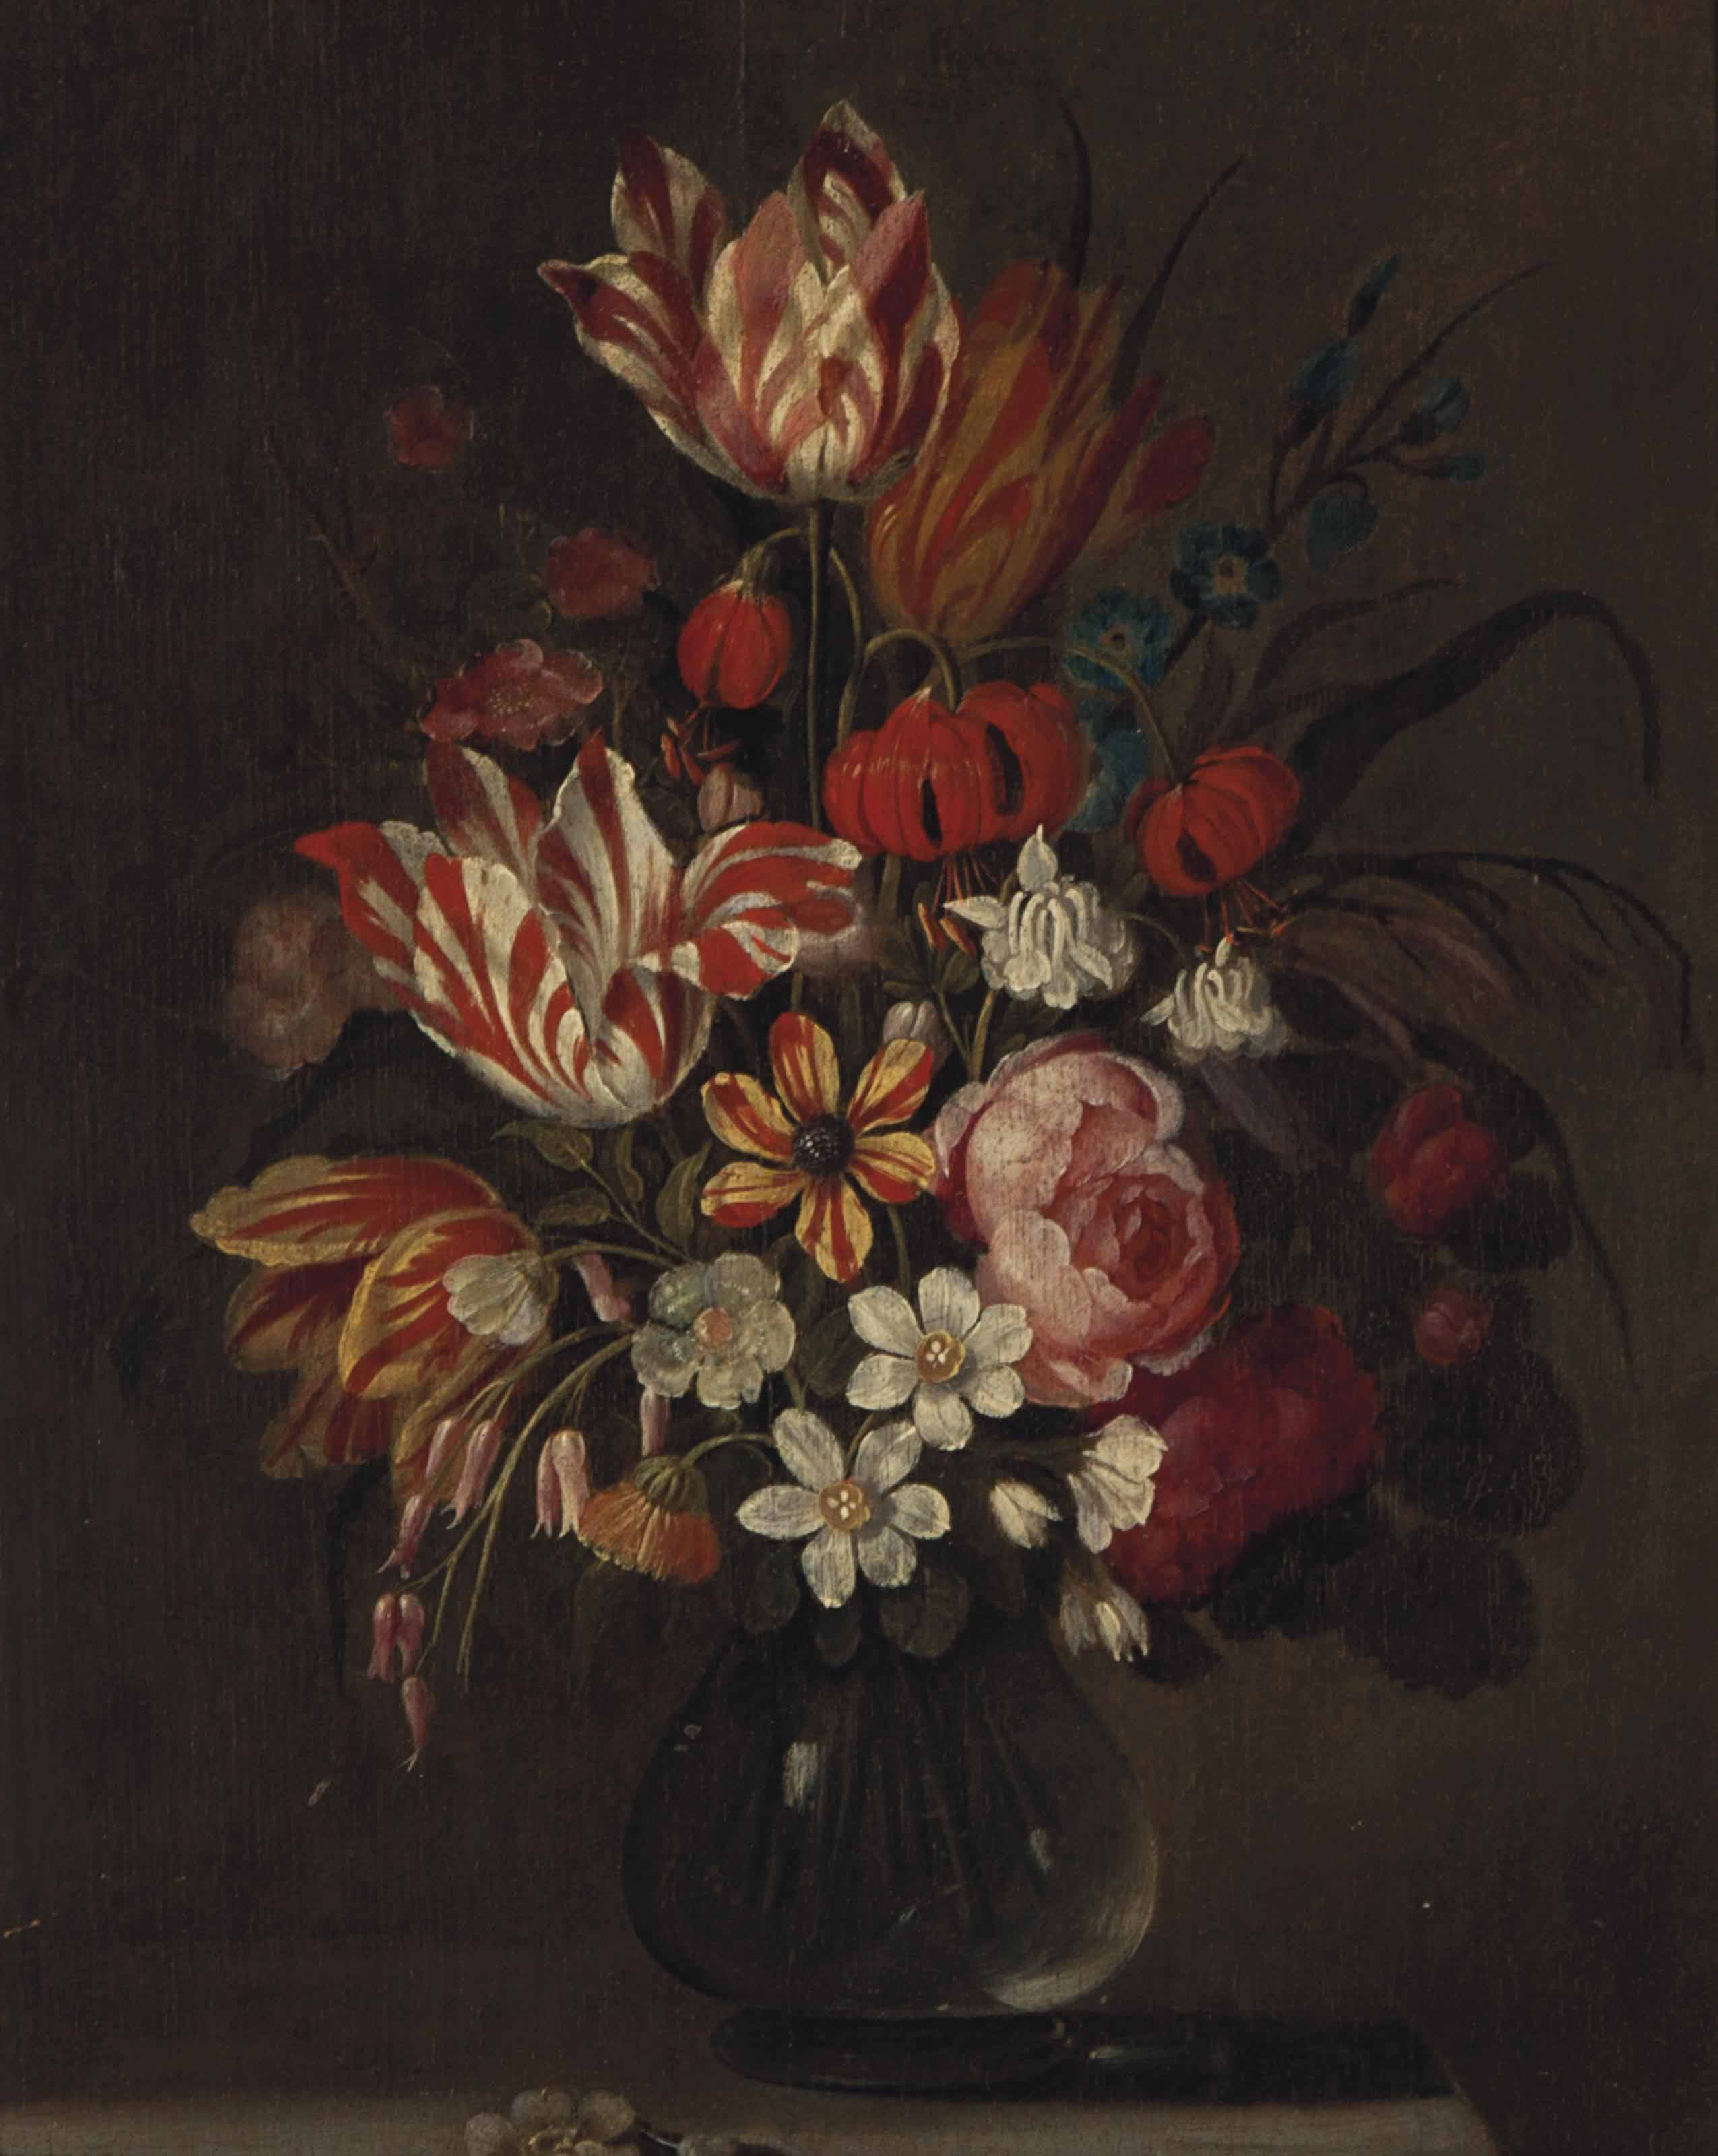 Still life with Tulips and Carnations in a glass vase